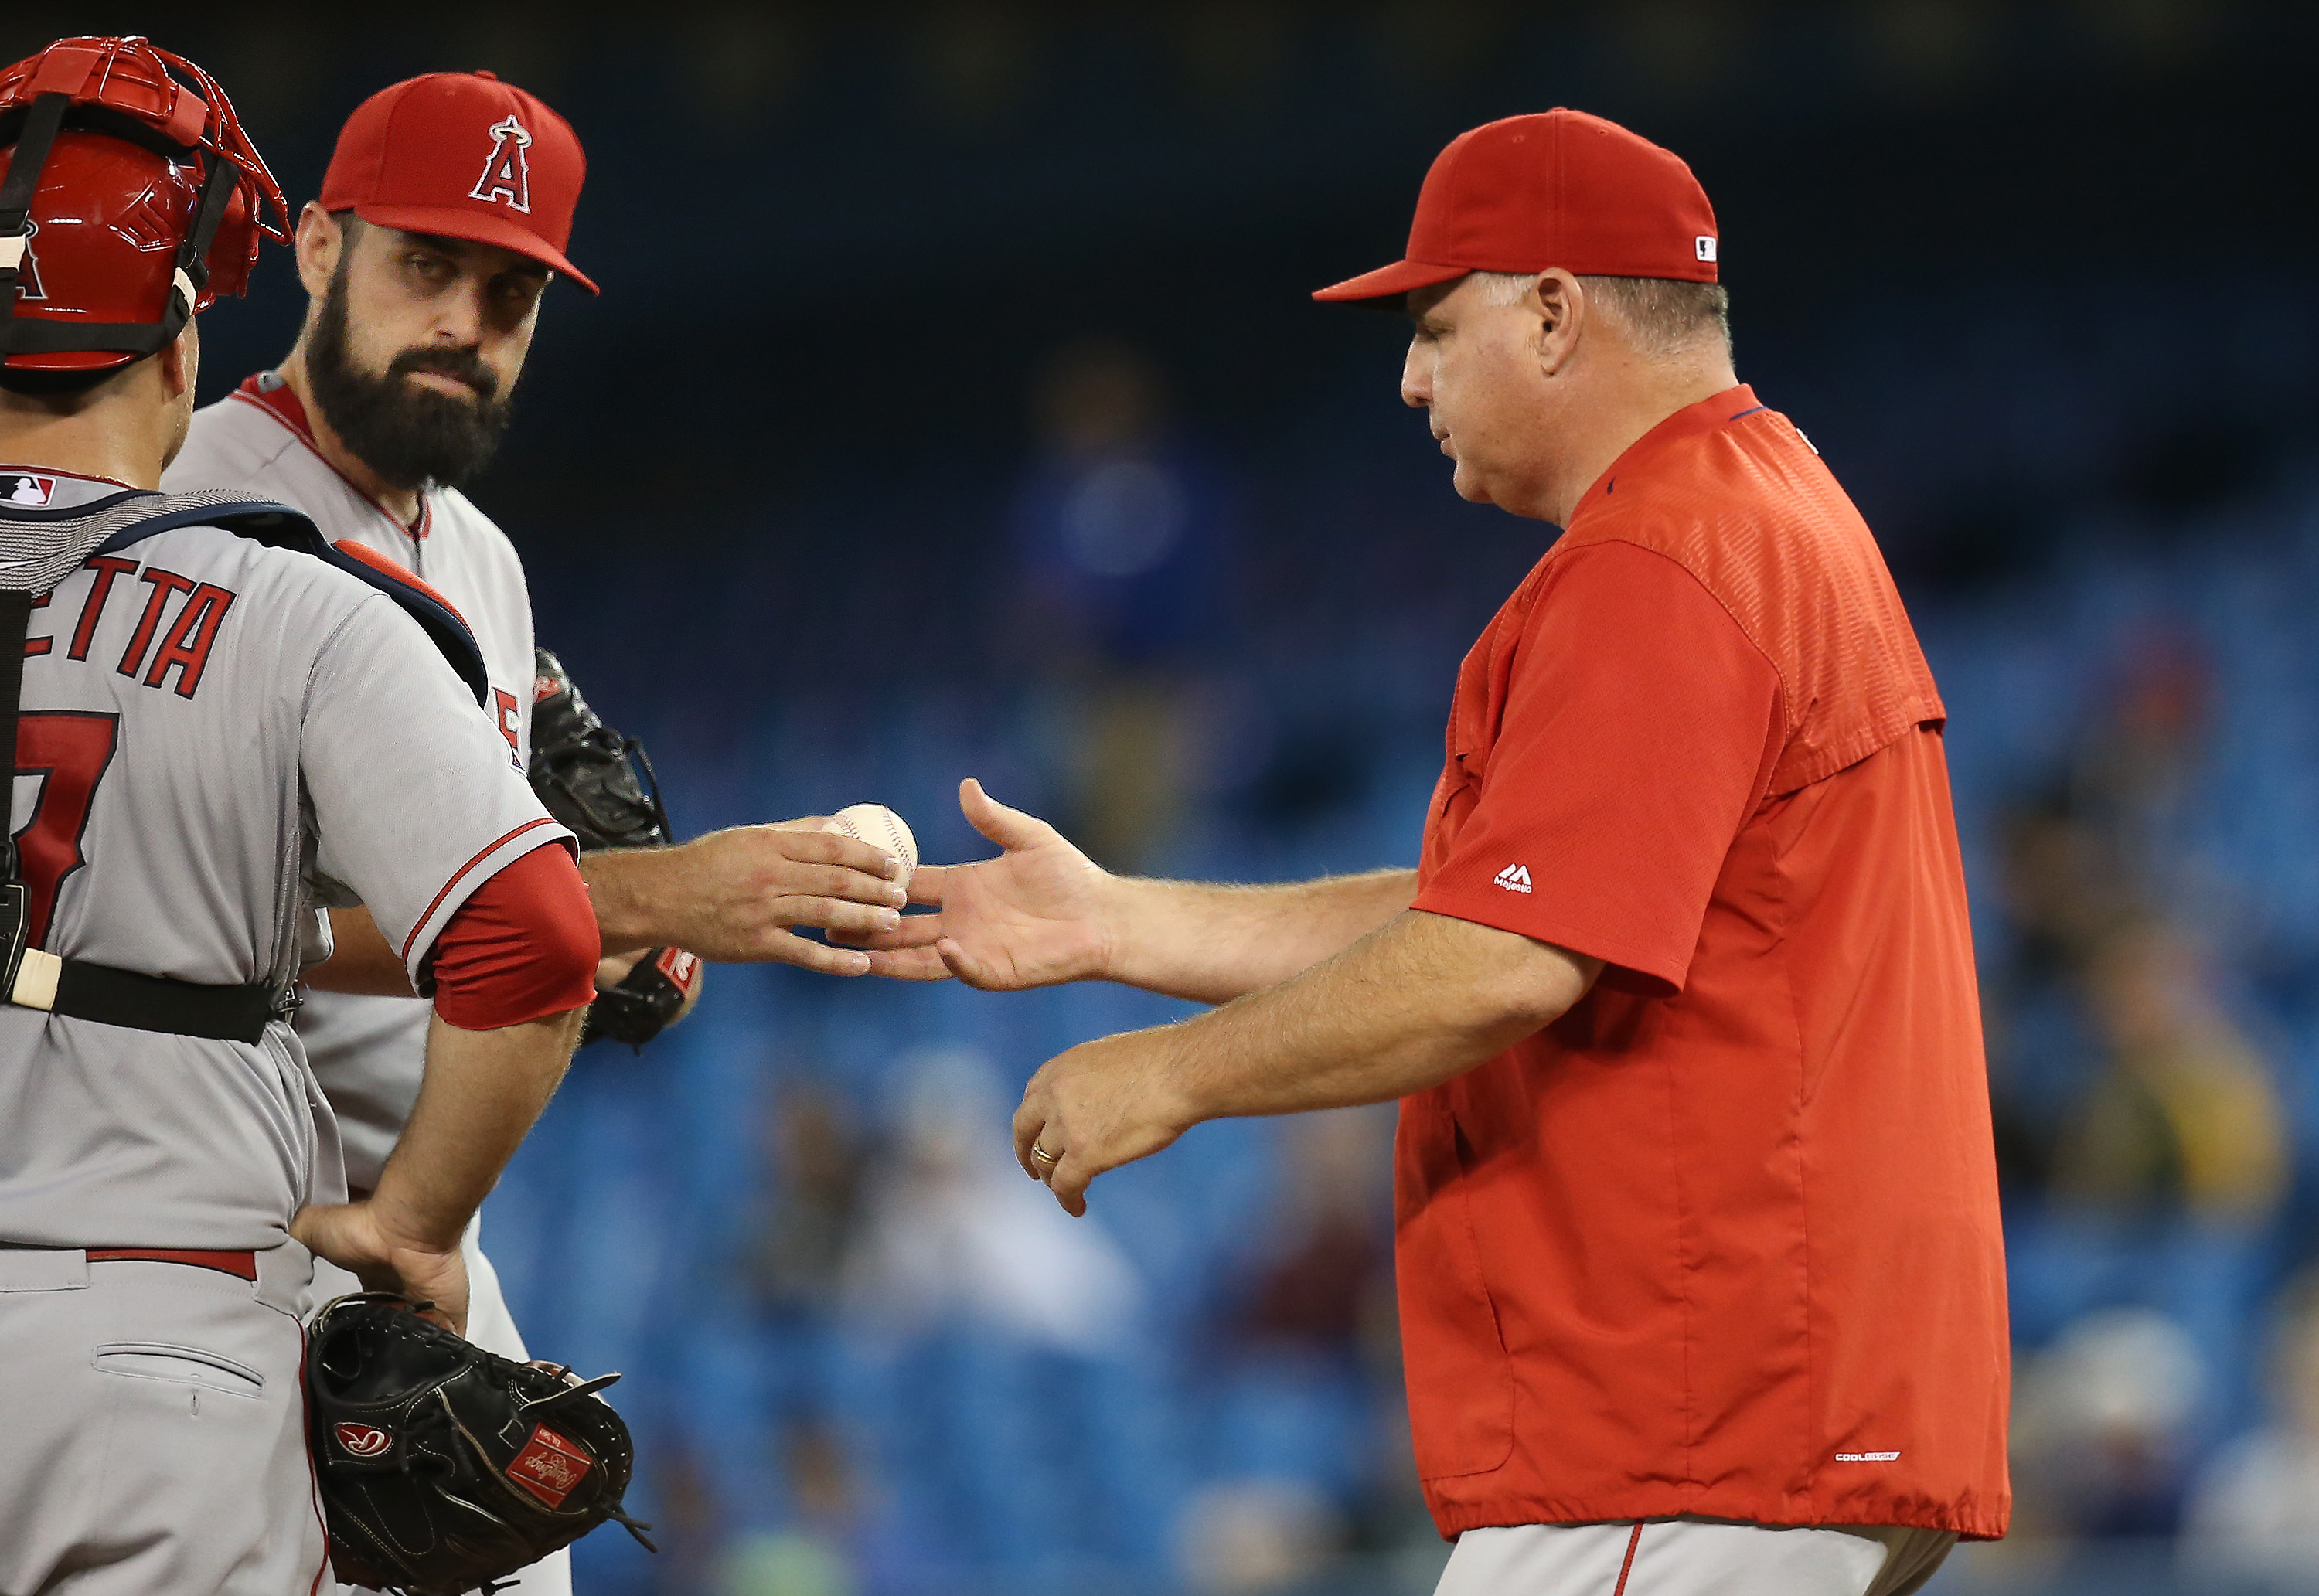 TORONTO, CANADA - MAY 21: Matt Shoemaker #52 of the Los Angeles Angels of Anaheim exits the game as he is relieved by manager Mike Scioscia #14 in the seventh inning during MLB game action against the Toronto Blue Jays on May 21, 2015 at Rogers Centre in Toronto, Ontario, Canada. (Photo by Tom Szczerbowski/Getty Images) *** Local Caption *** Matt Shoemaker; Mike Scioscia